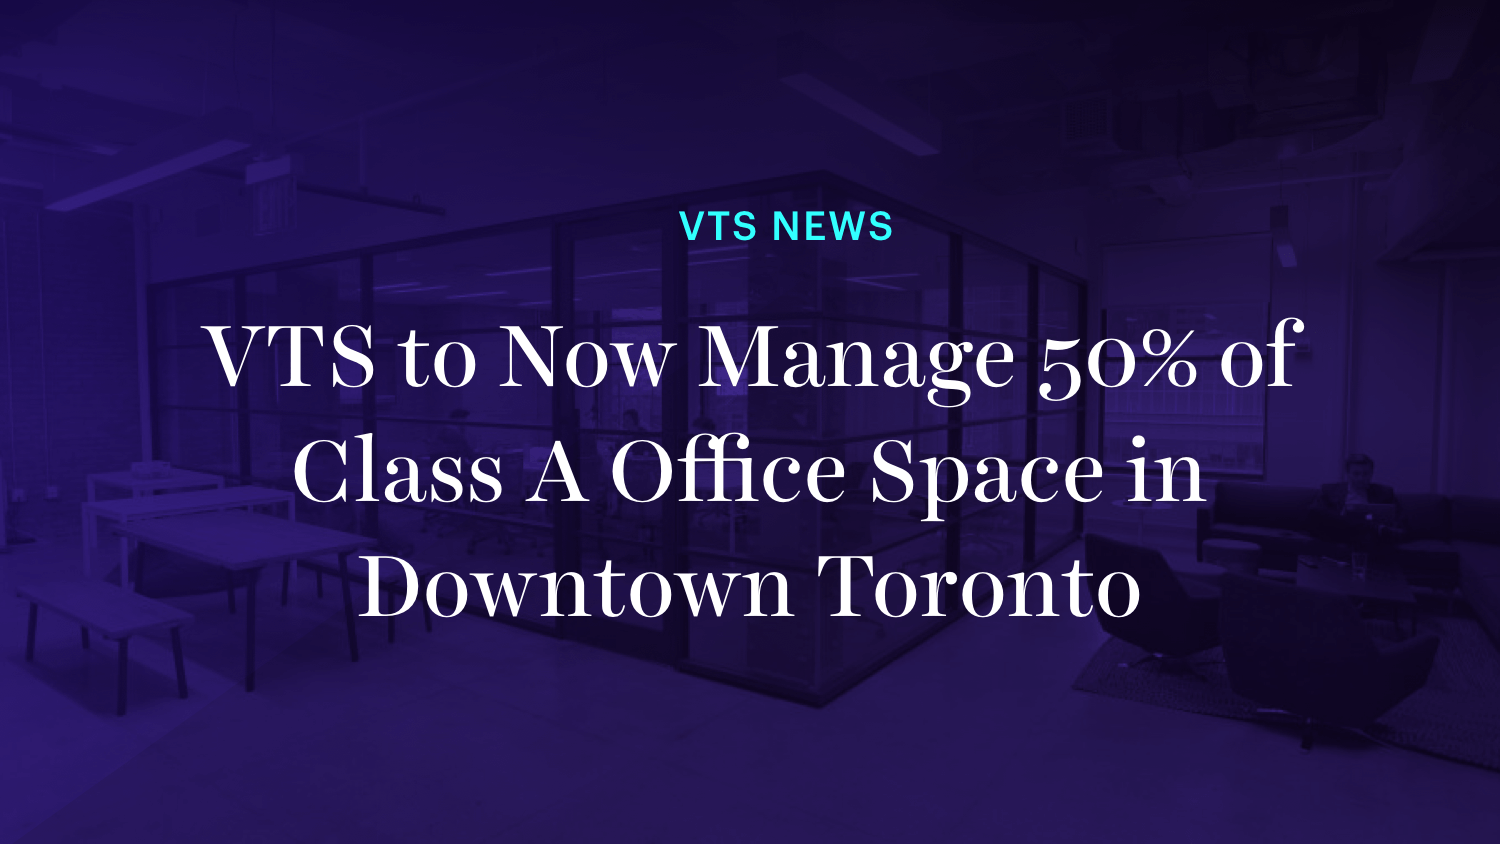 VTS to Now Manage 50% of Class A Office Space in Downtown Toronto